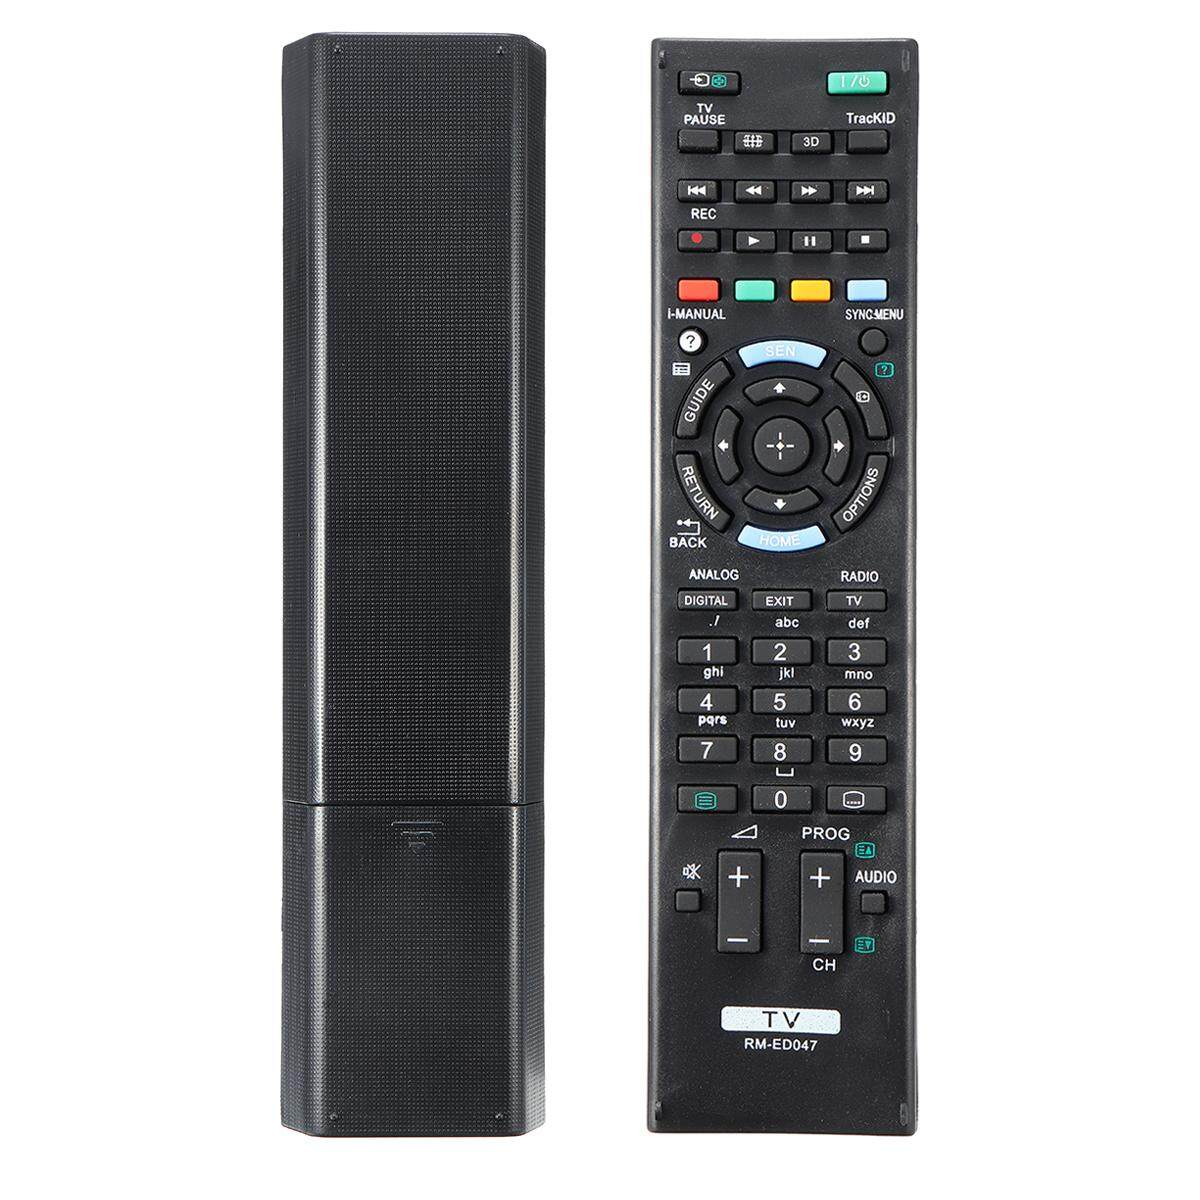 Hình ảnh Sony TV Remote - TV Replacement Controller Suites - All Sony Bravia TV Models